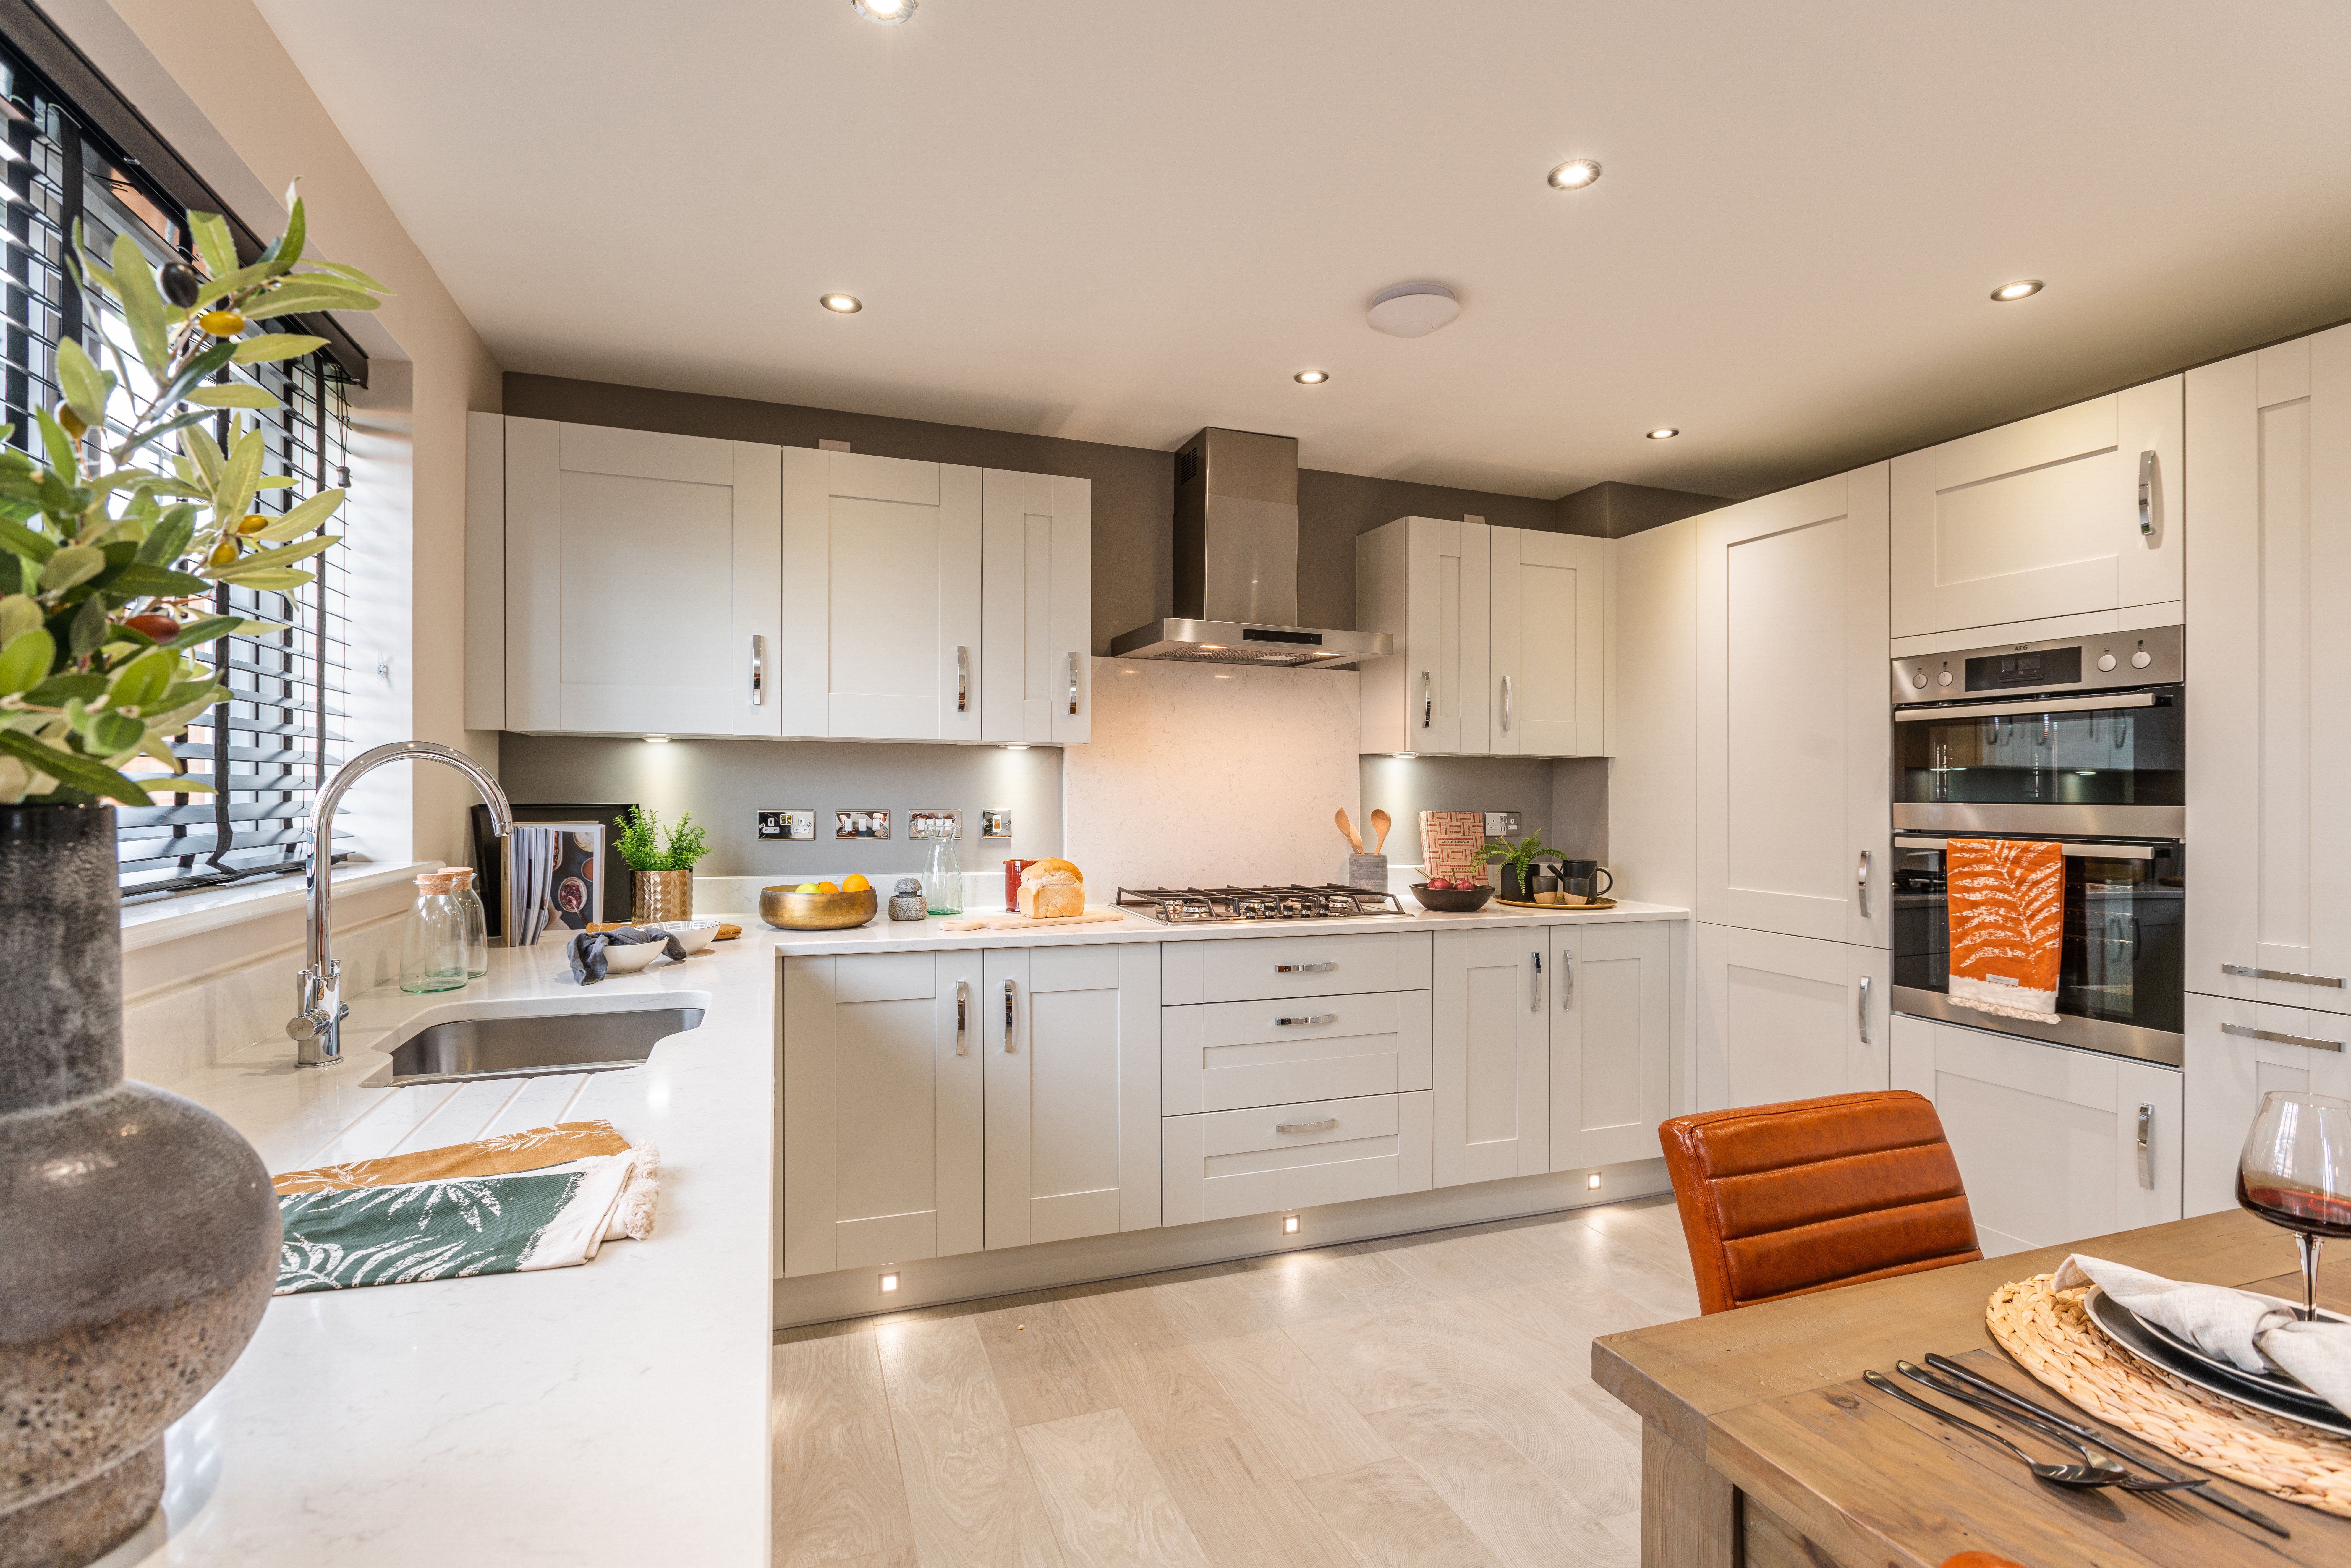 TW NY_Whiteacres_PD411_Haddenham_Kitchen 5